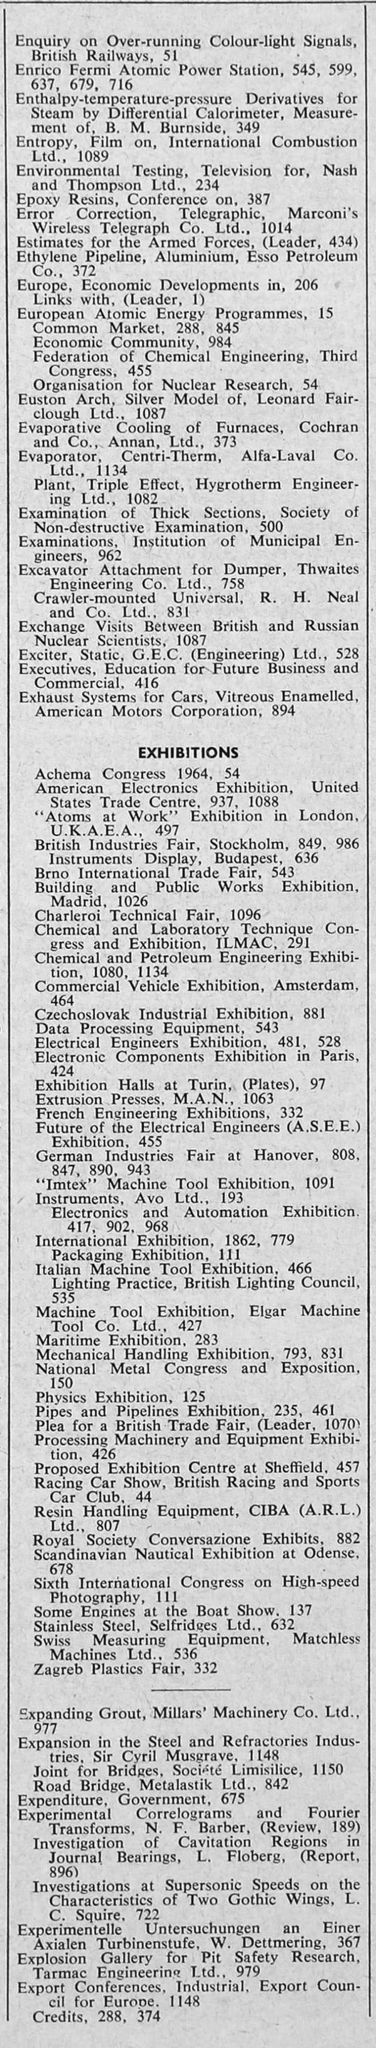 Inventions Of the Industrial Revolution Worksheet as Well as the Engineer 1962 Jan Jun Index Sections 2 and 3